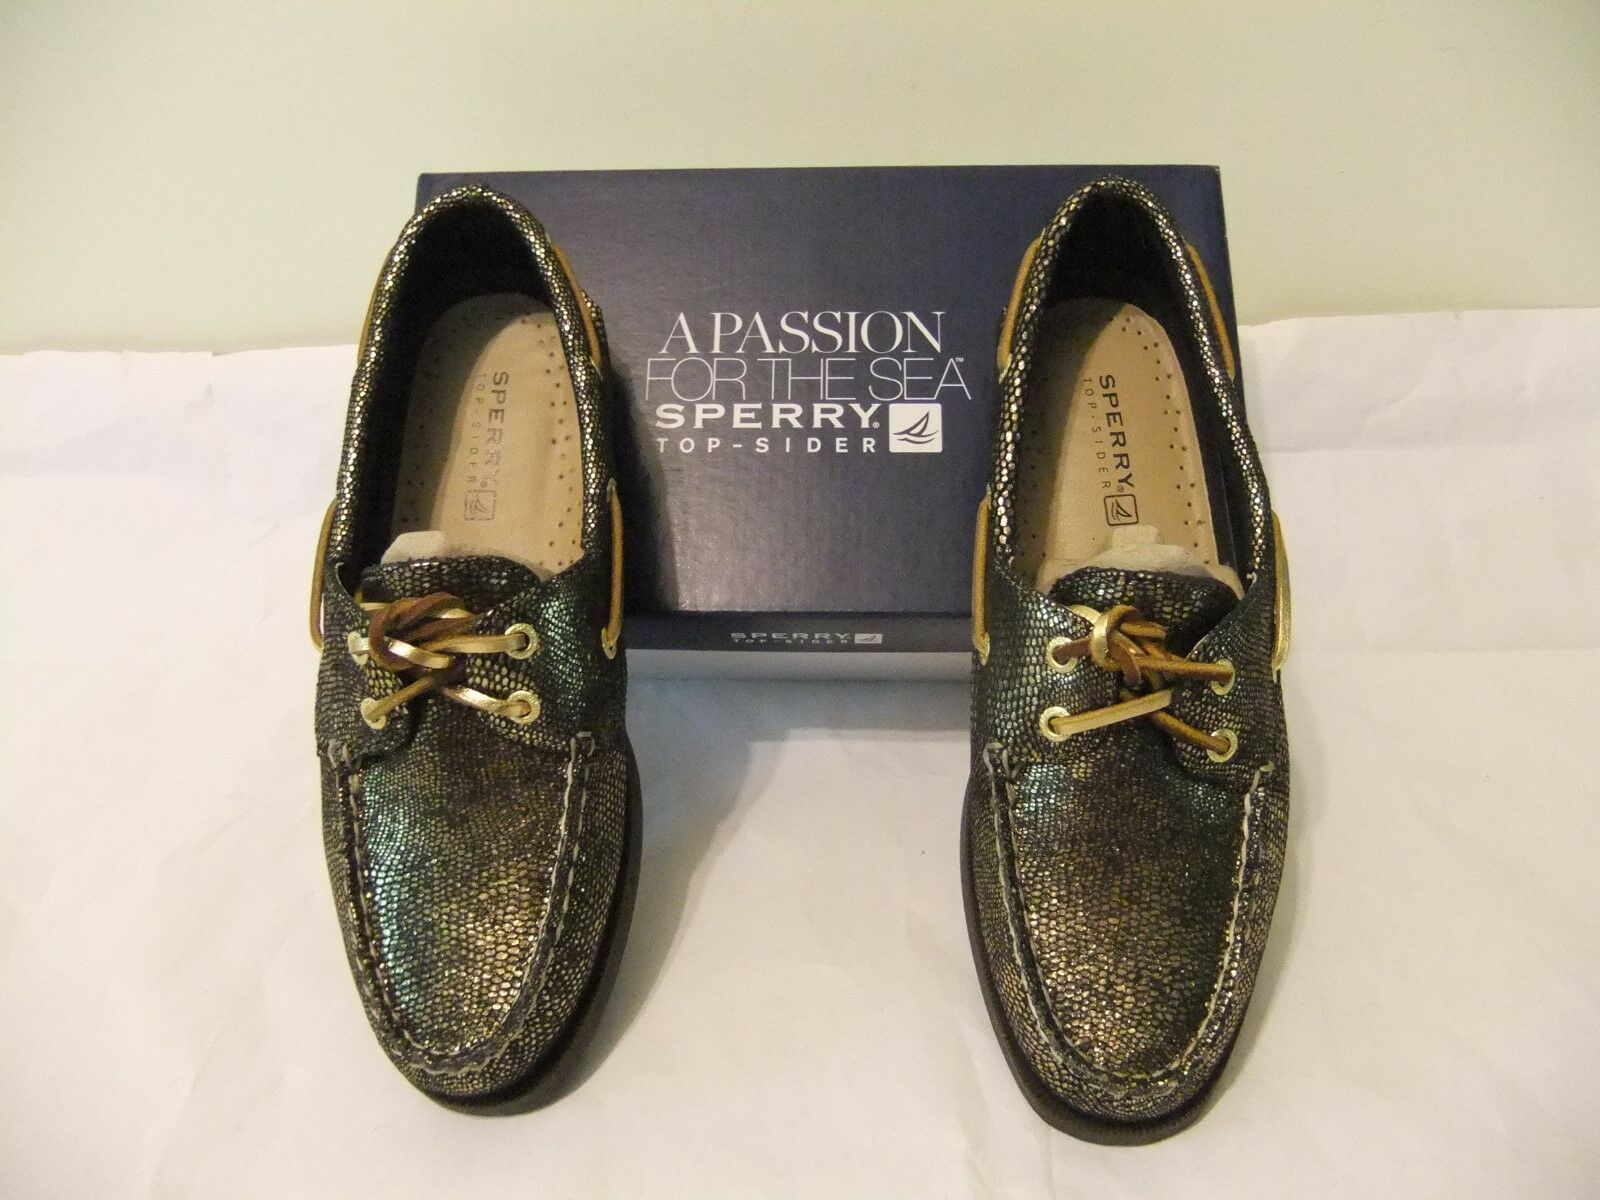 SPERRY TOP SIDER A O O O Black gold Metallic Leather Boat shoes Sz 8.5 EU 39.5 NIB 95 11a87a